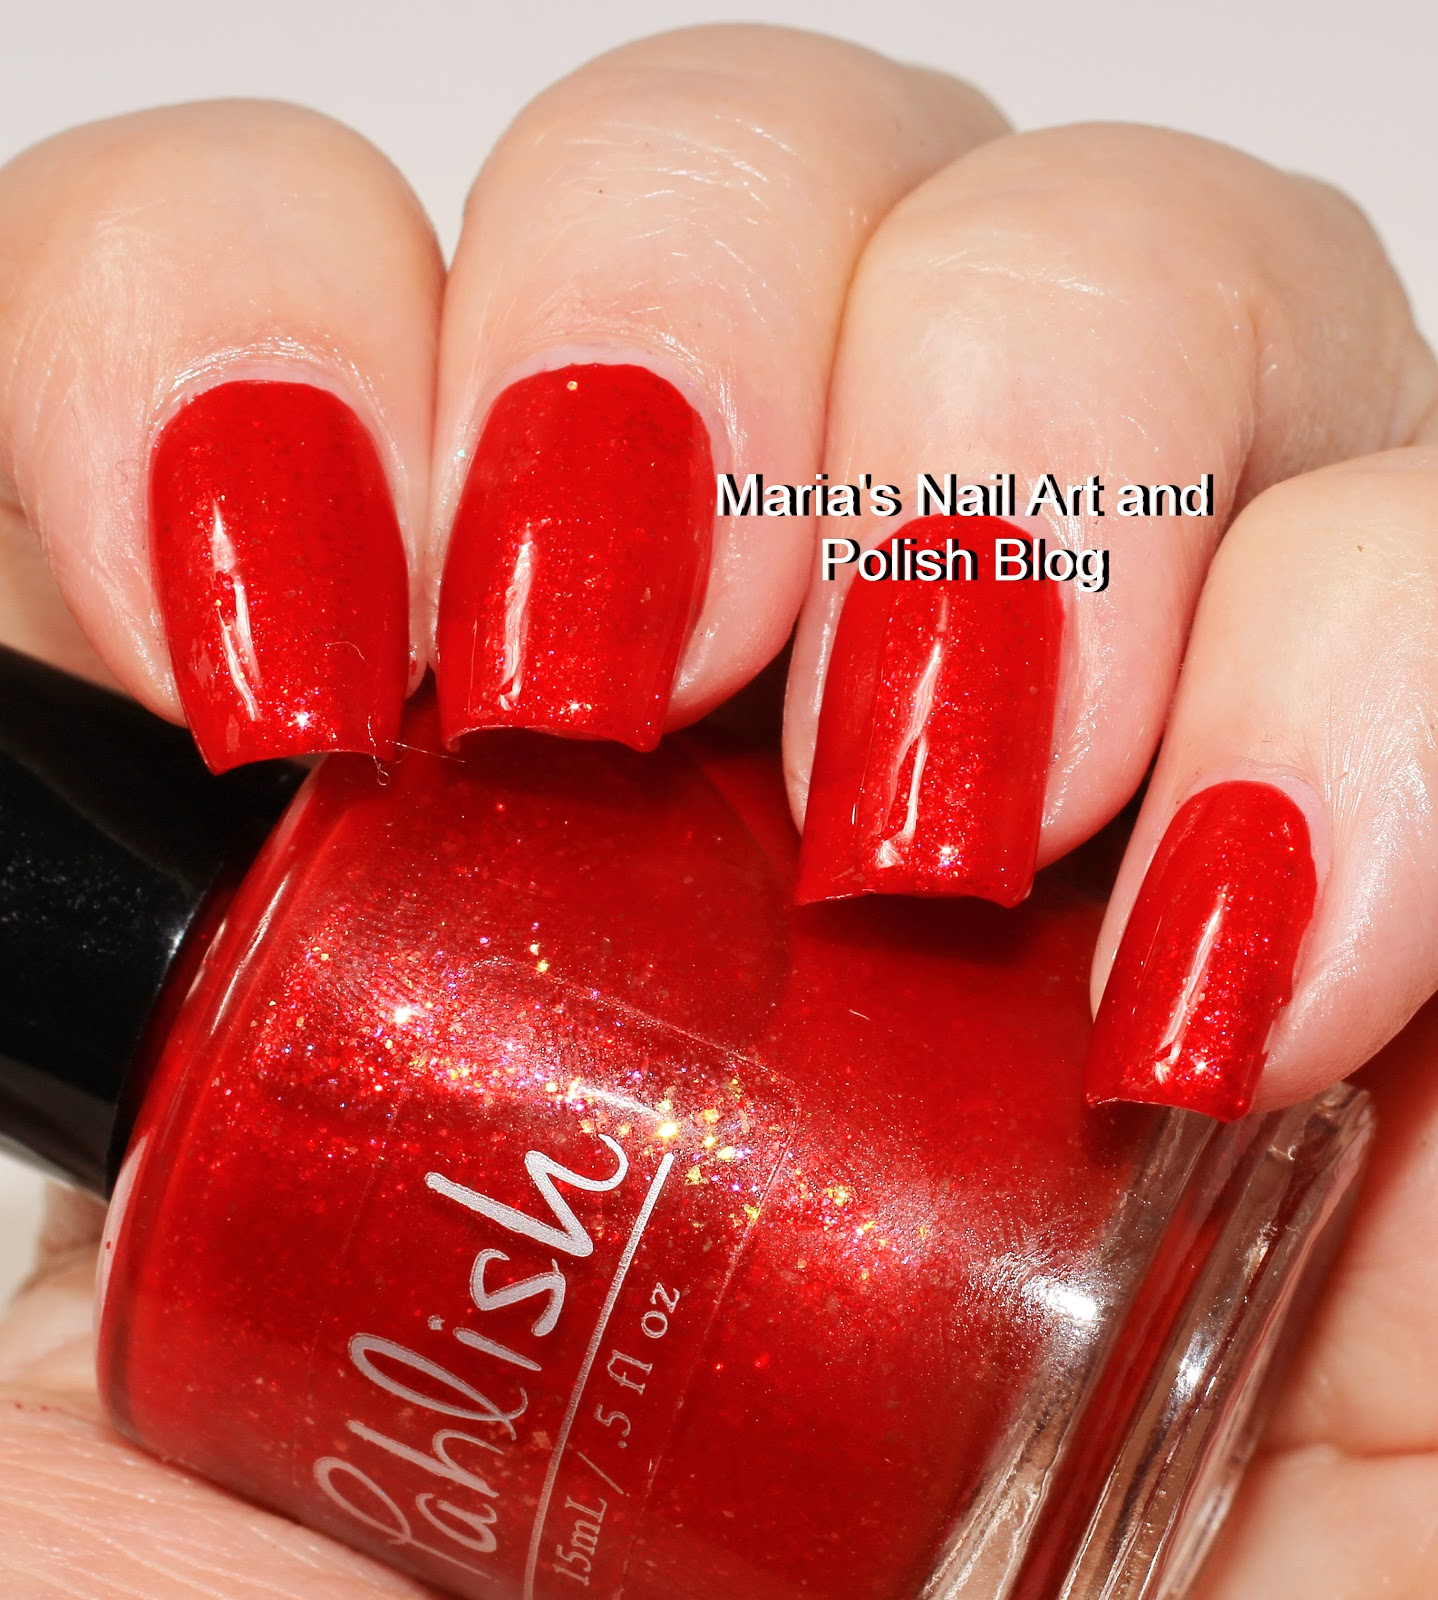 Marias Nail Art And Polish Blog Flushed With Stripes And: Marias Nail Art And Polish Blog: Pahlish Litlte Red Light